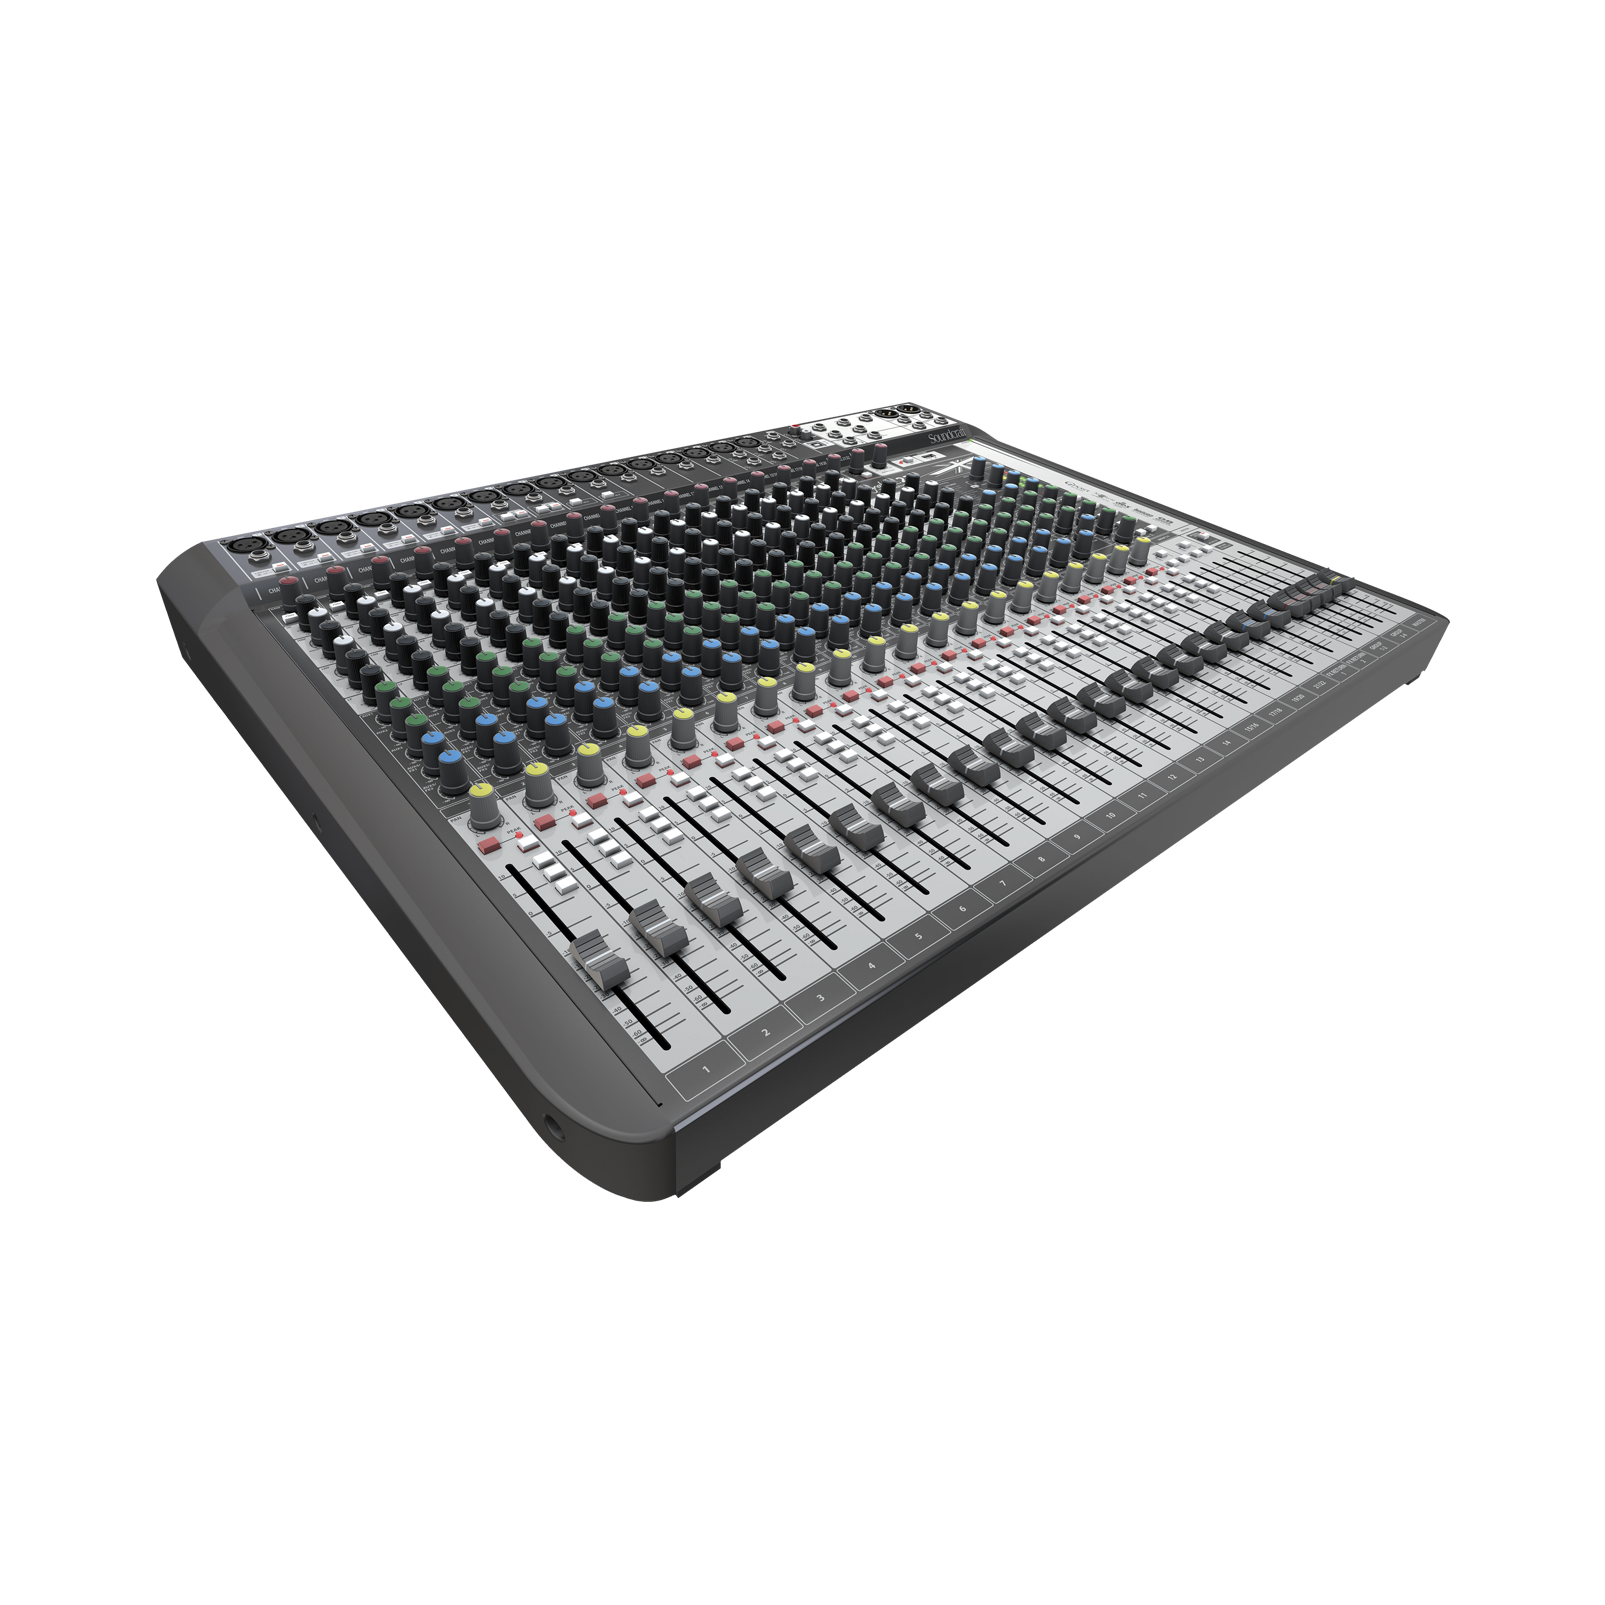 Signature 22 MTK - Black - 22-input analogue mixer with onboard effects - Detailshot 1